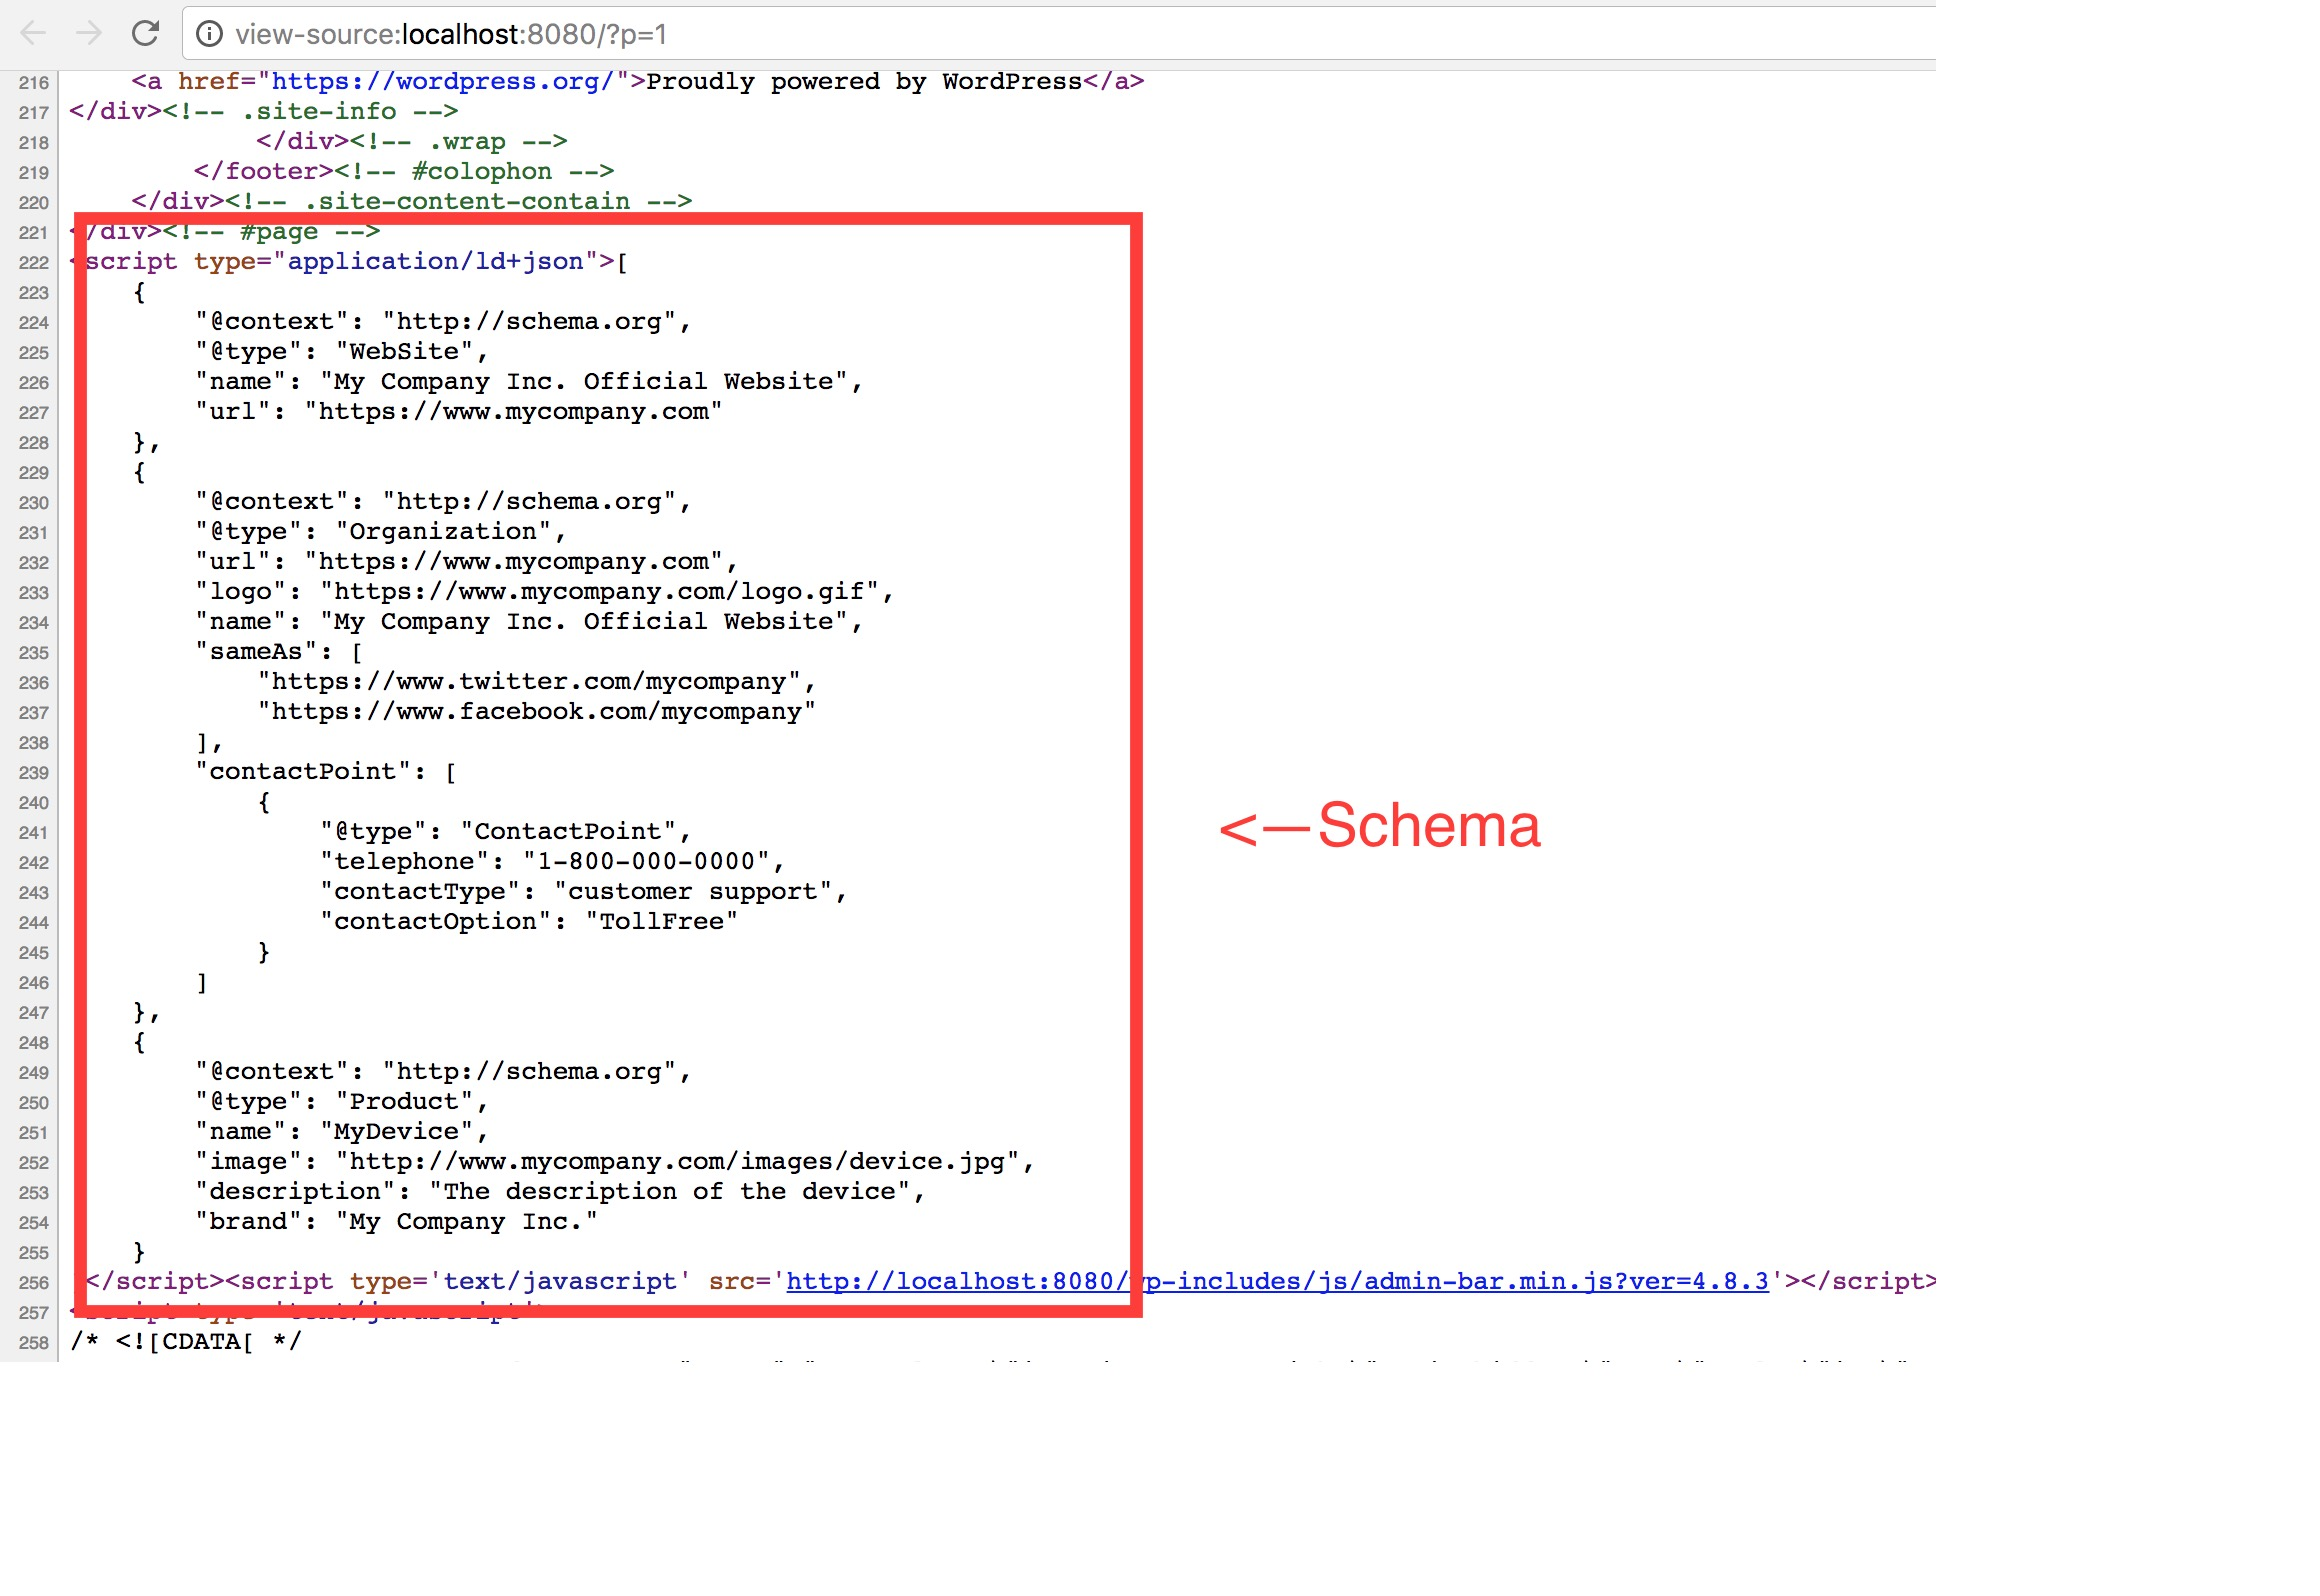 Example of a generated schema in the html source code